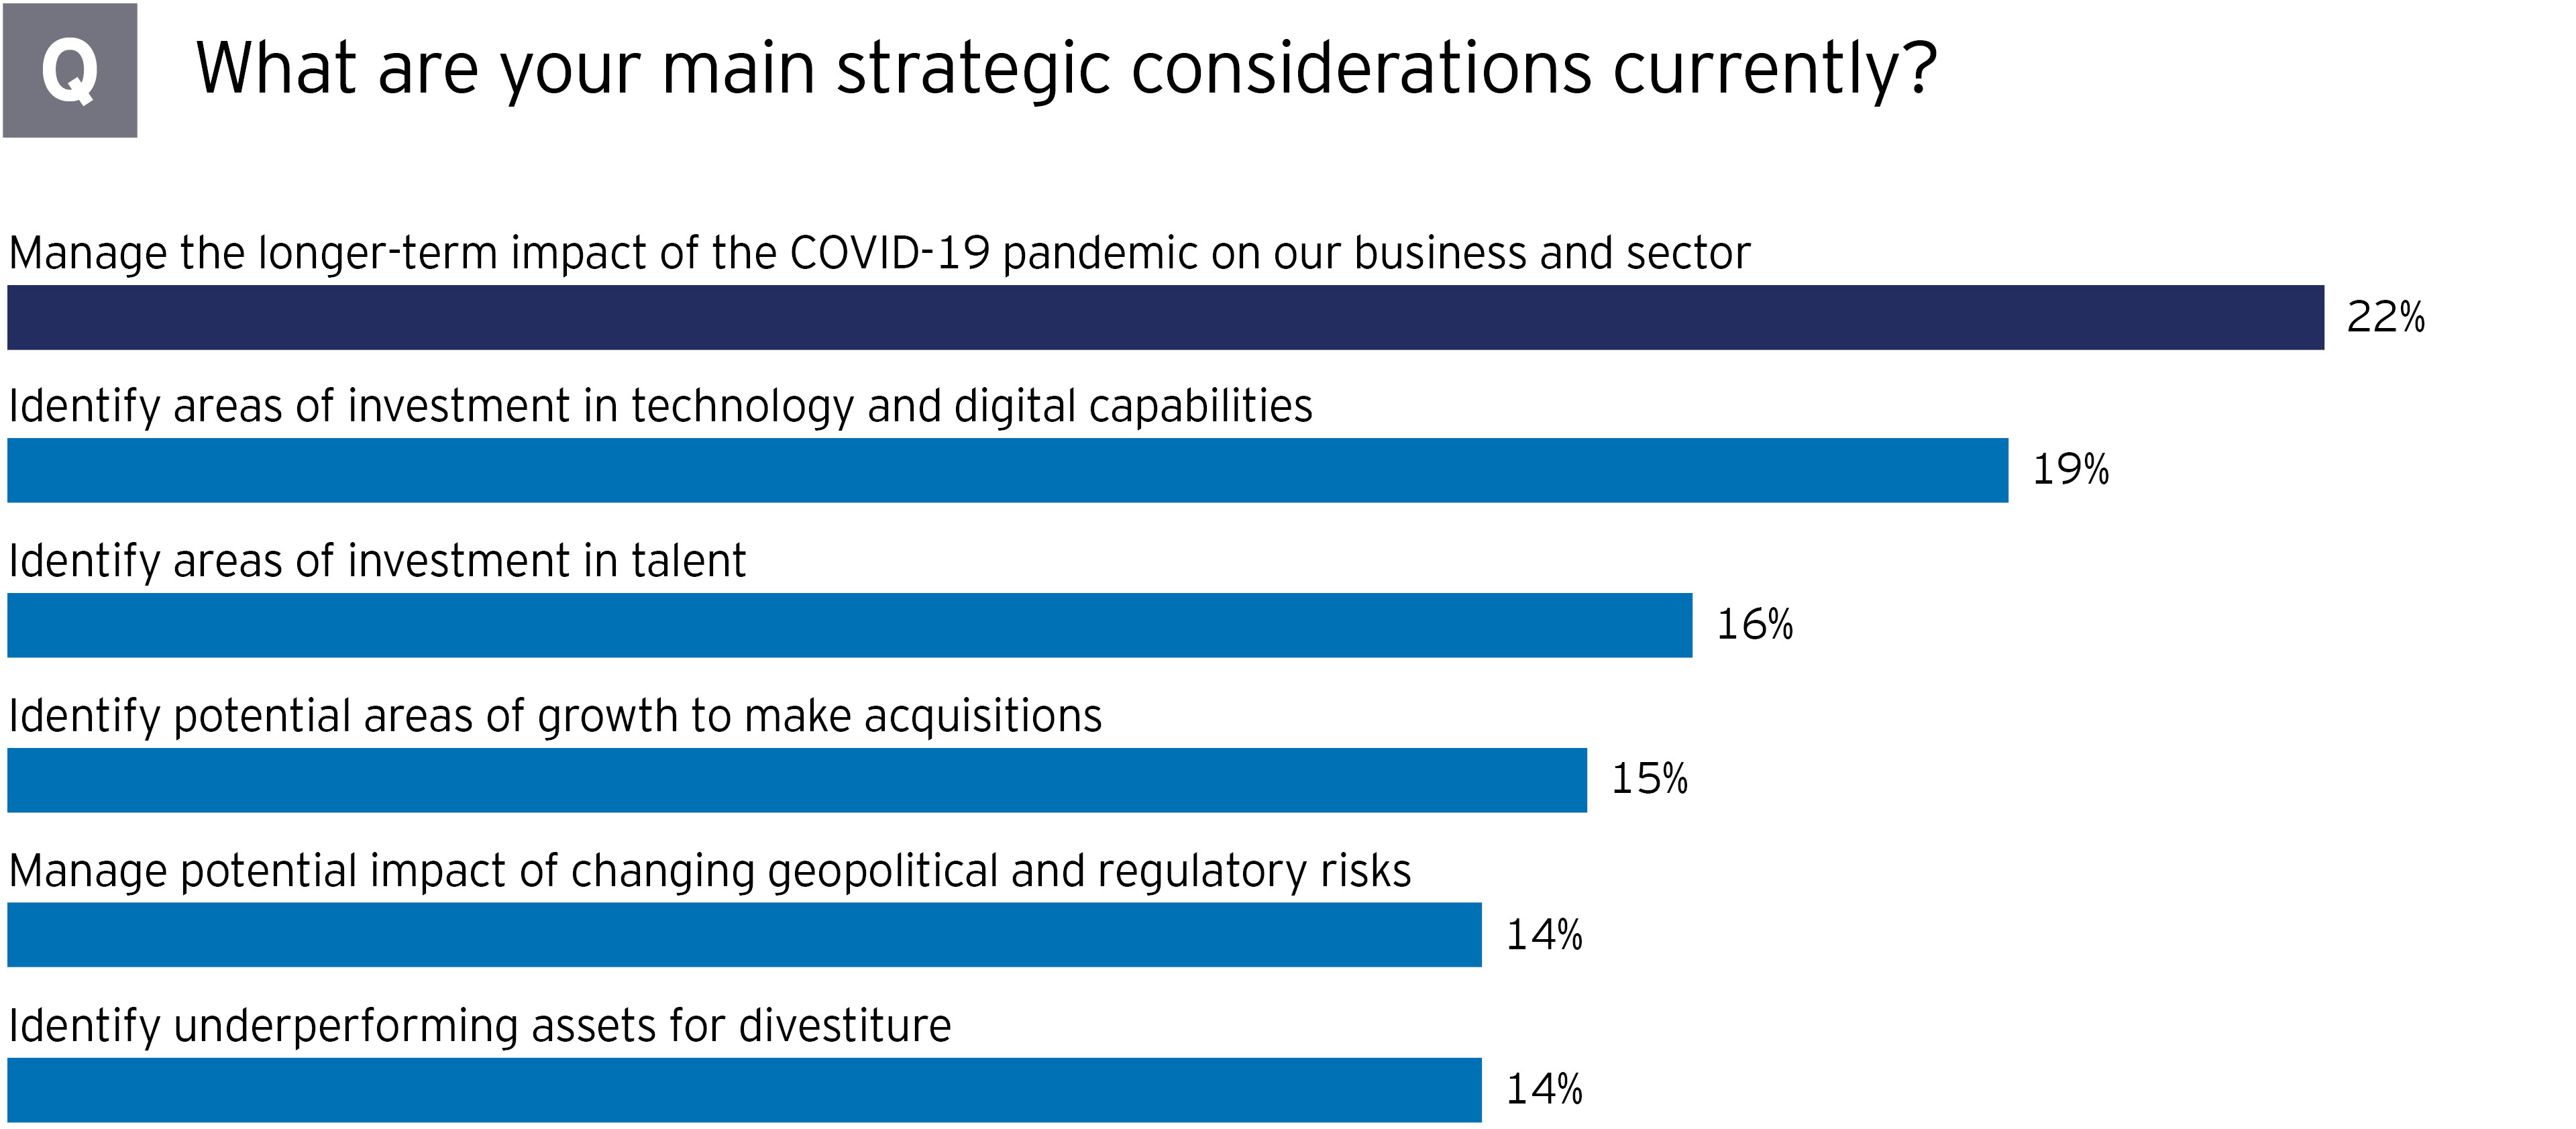 Government and infrastructure main strategic considerations